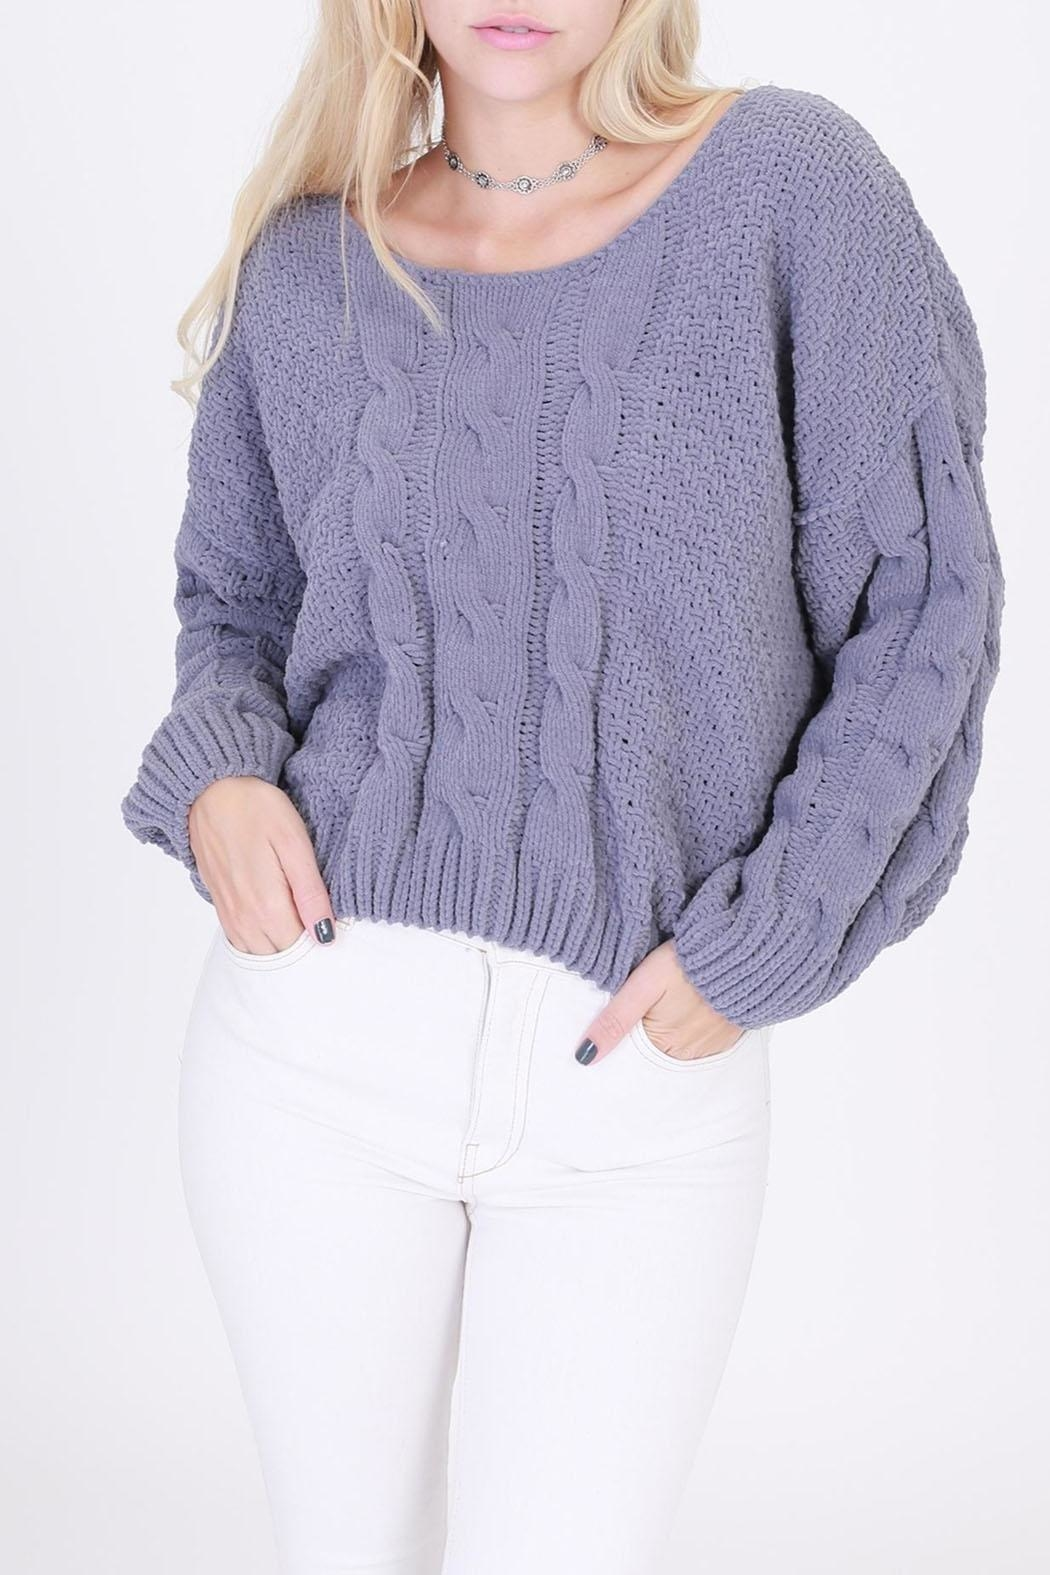 HYFVE Pullover Cropped Sweater - Front Full Image